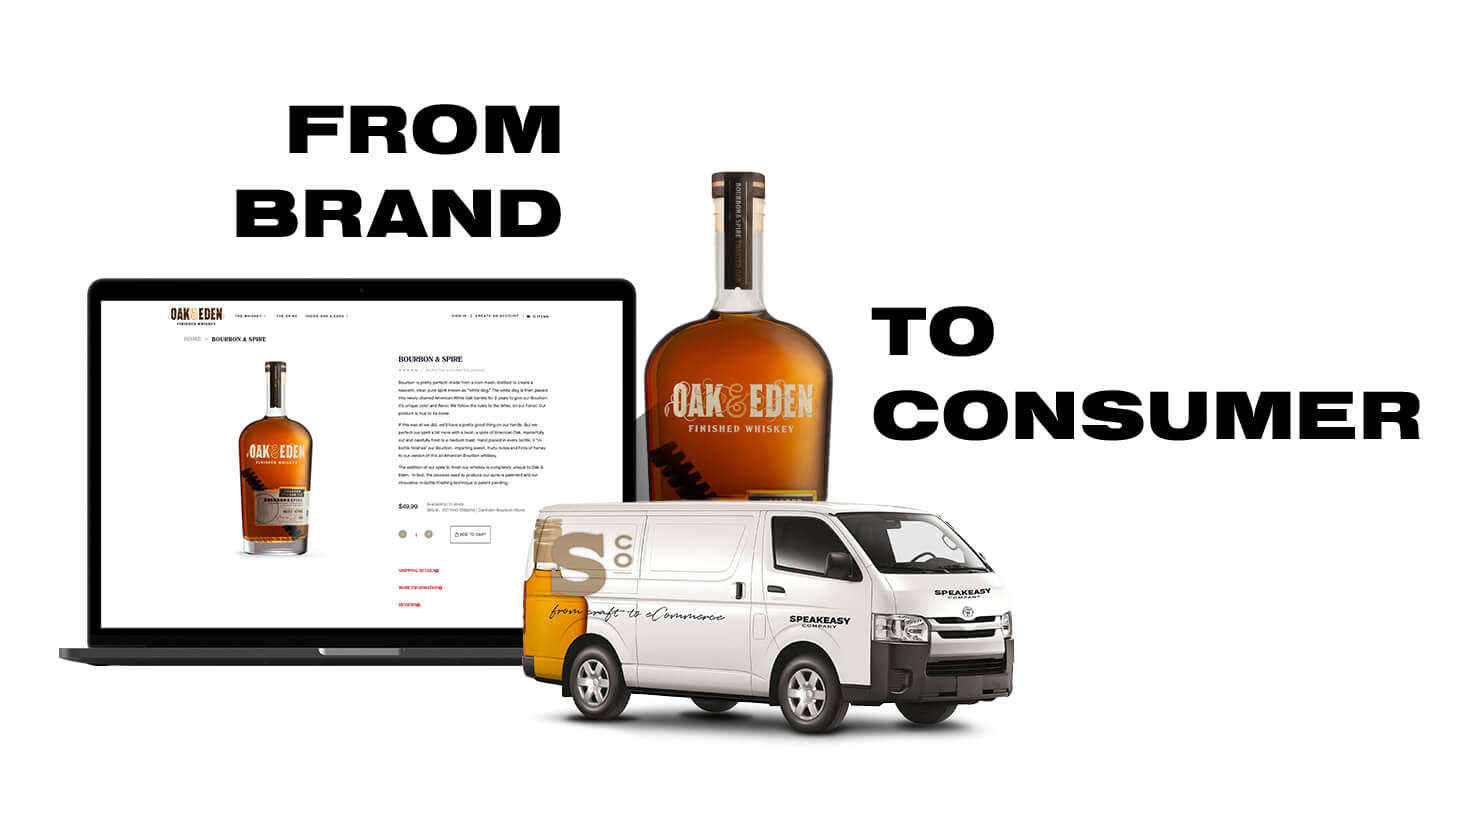 From Brand To Consumer